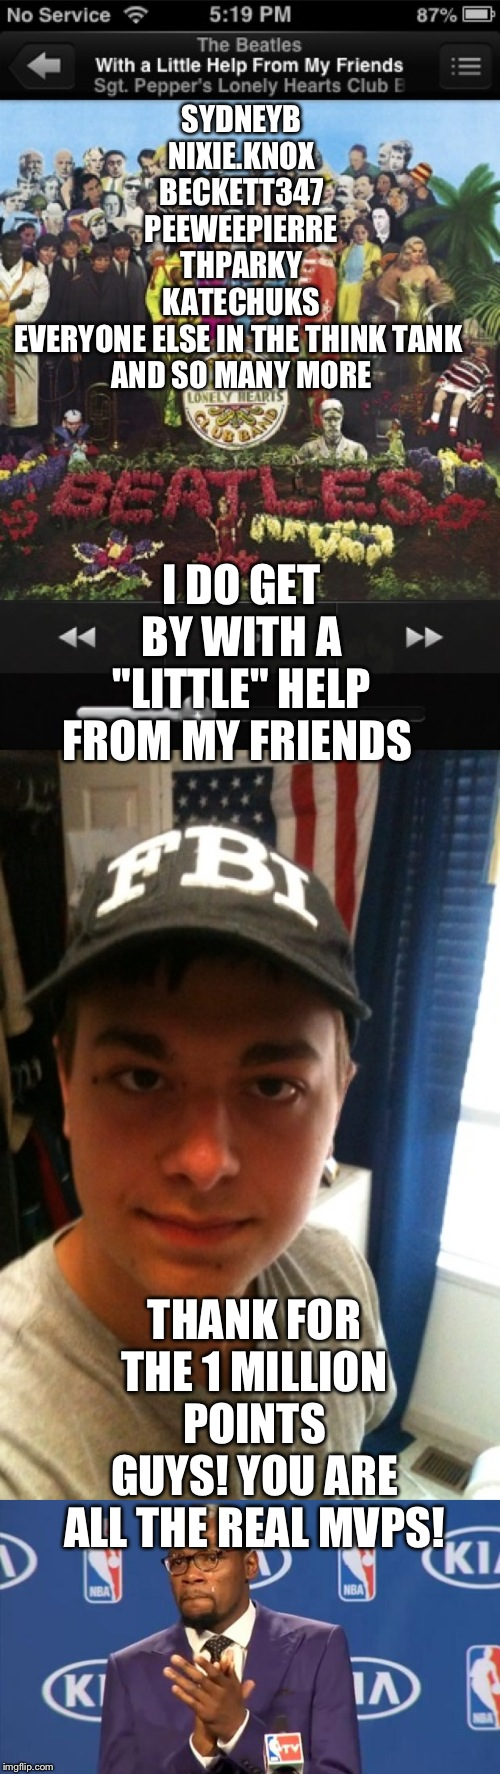 "I DO GET BY WITH A ""LITTLE"" HELP FROM MY FRIENDS THANK FOR THE 1 MILLION POINTS GUYS! YOU ARE ALL THE REAL MVPS! SYDNEYB NIXIE.KNOX BECKETT3 